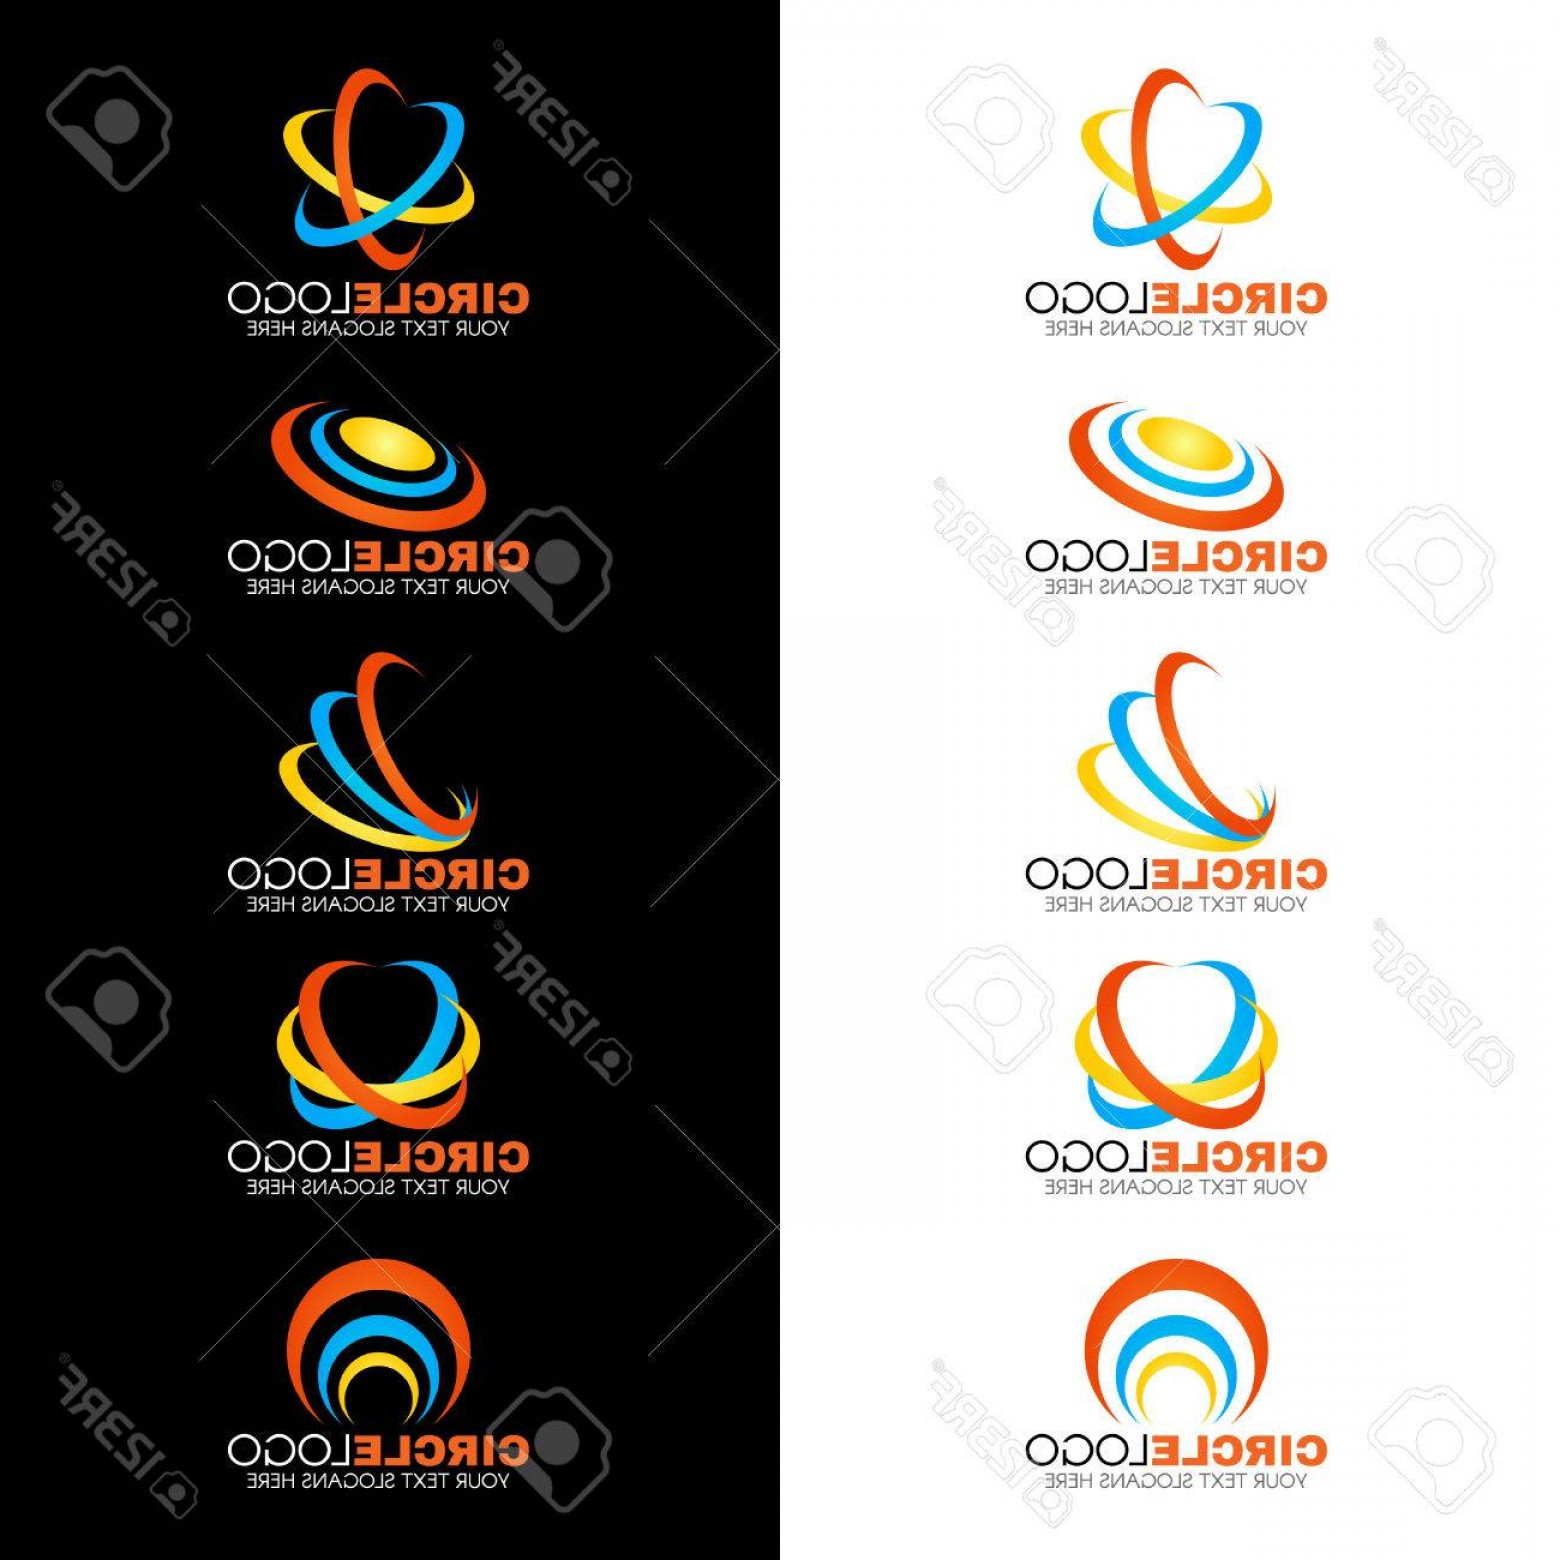 Blue And Orange Circle Vector: Photostock Vector Yellow Blue Orange Circle Wave Line Logo Vector Design